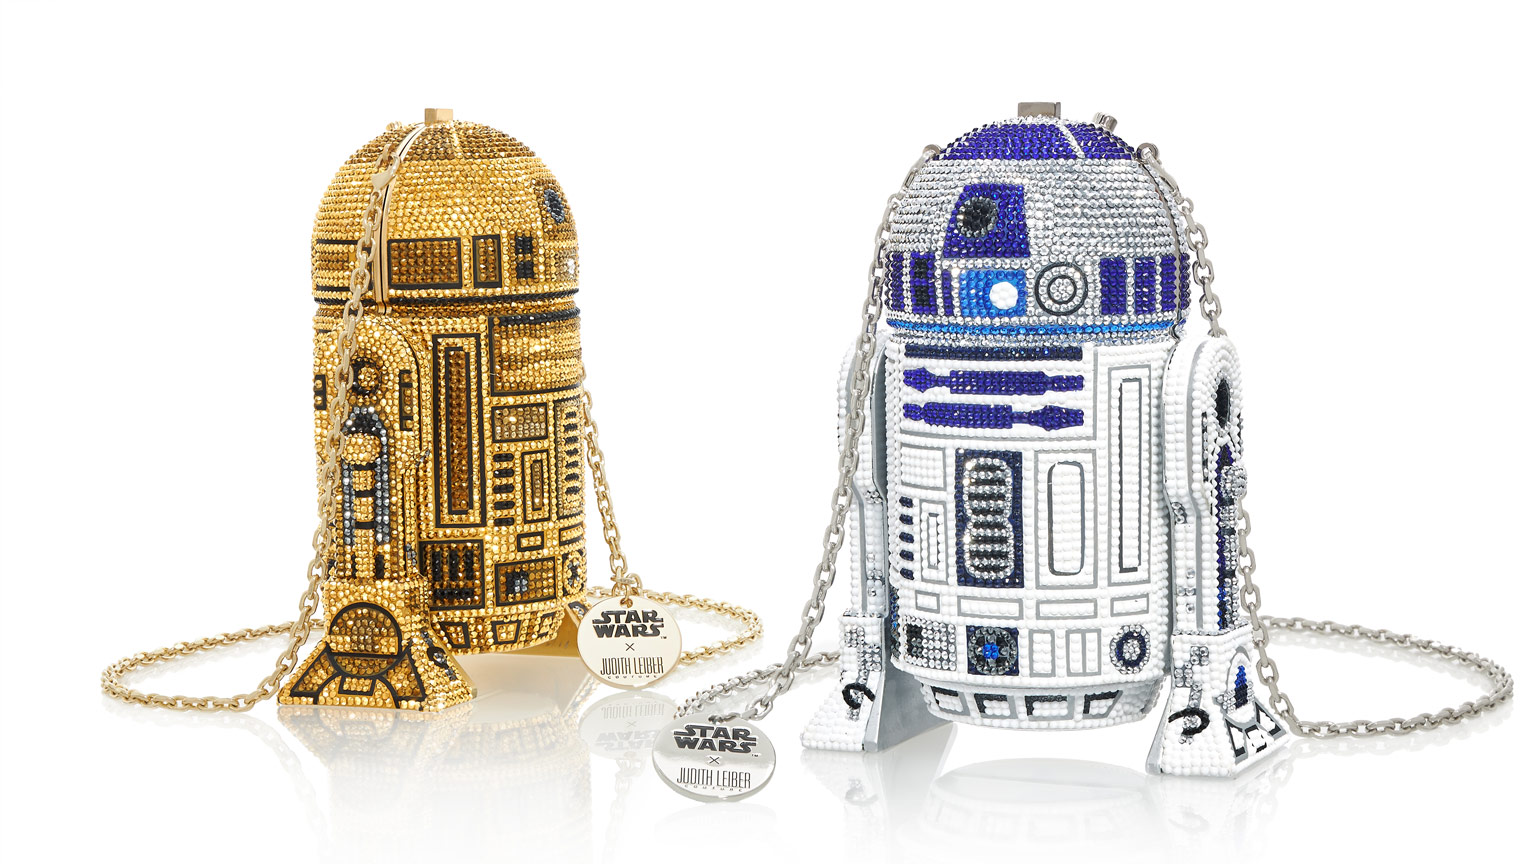 Judith Leiber's R2-D2 Classic and Gold bags close up